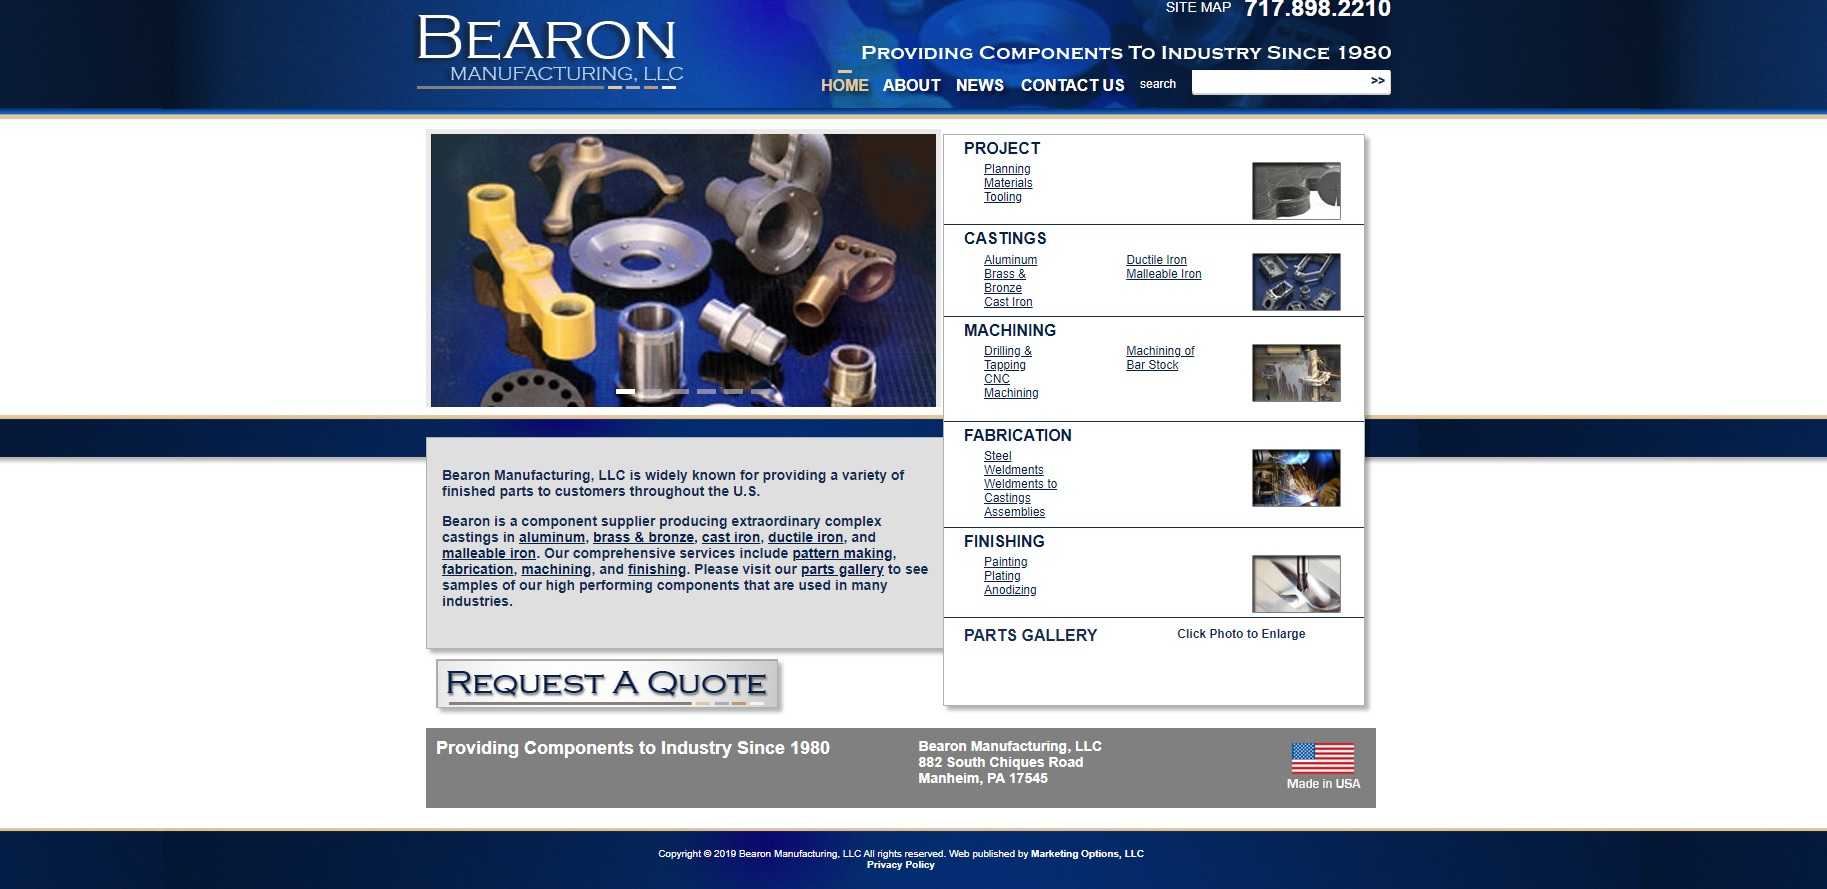 Bearon Manufacturing, LLC